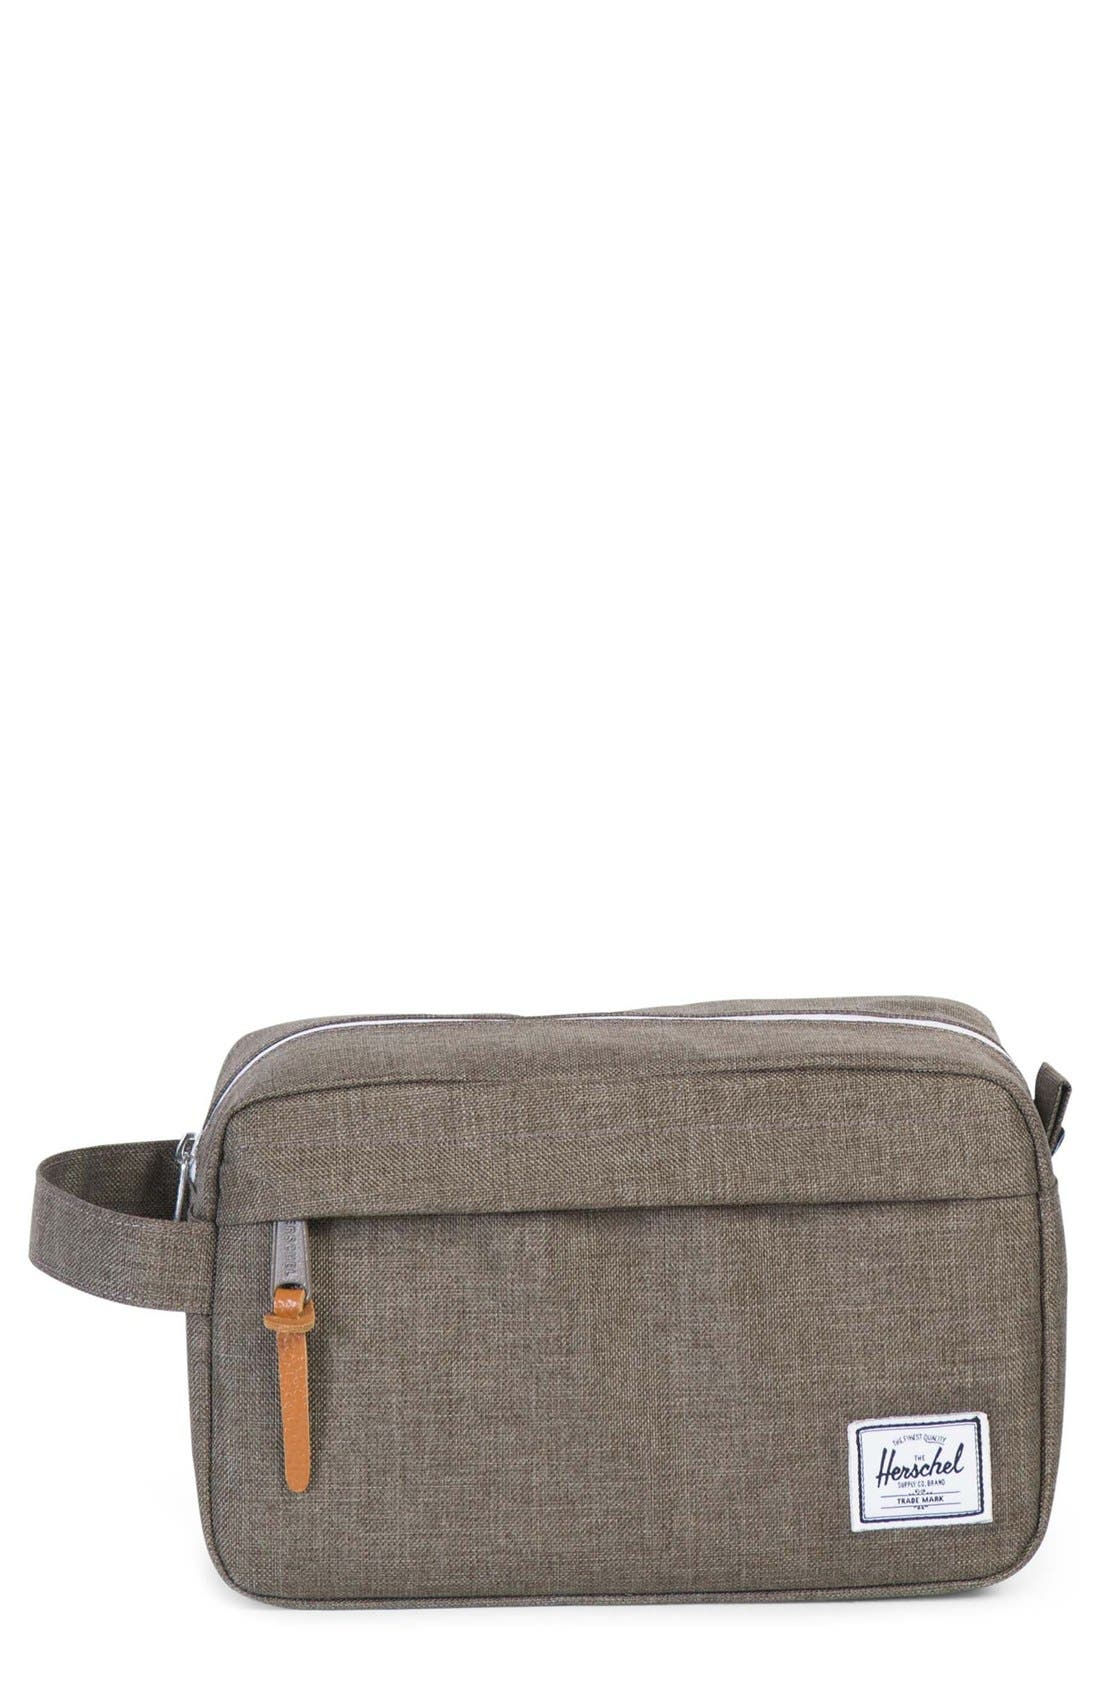 Chapter Travel Kit,                         Main,                         color,